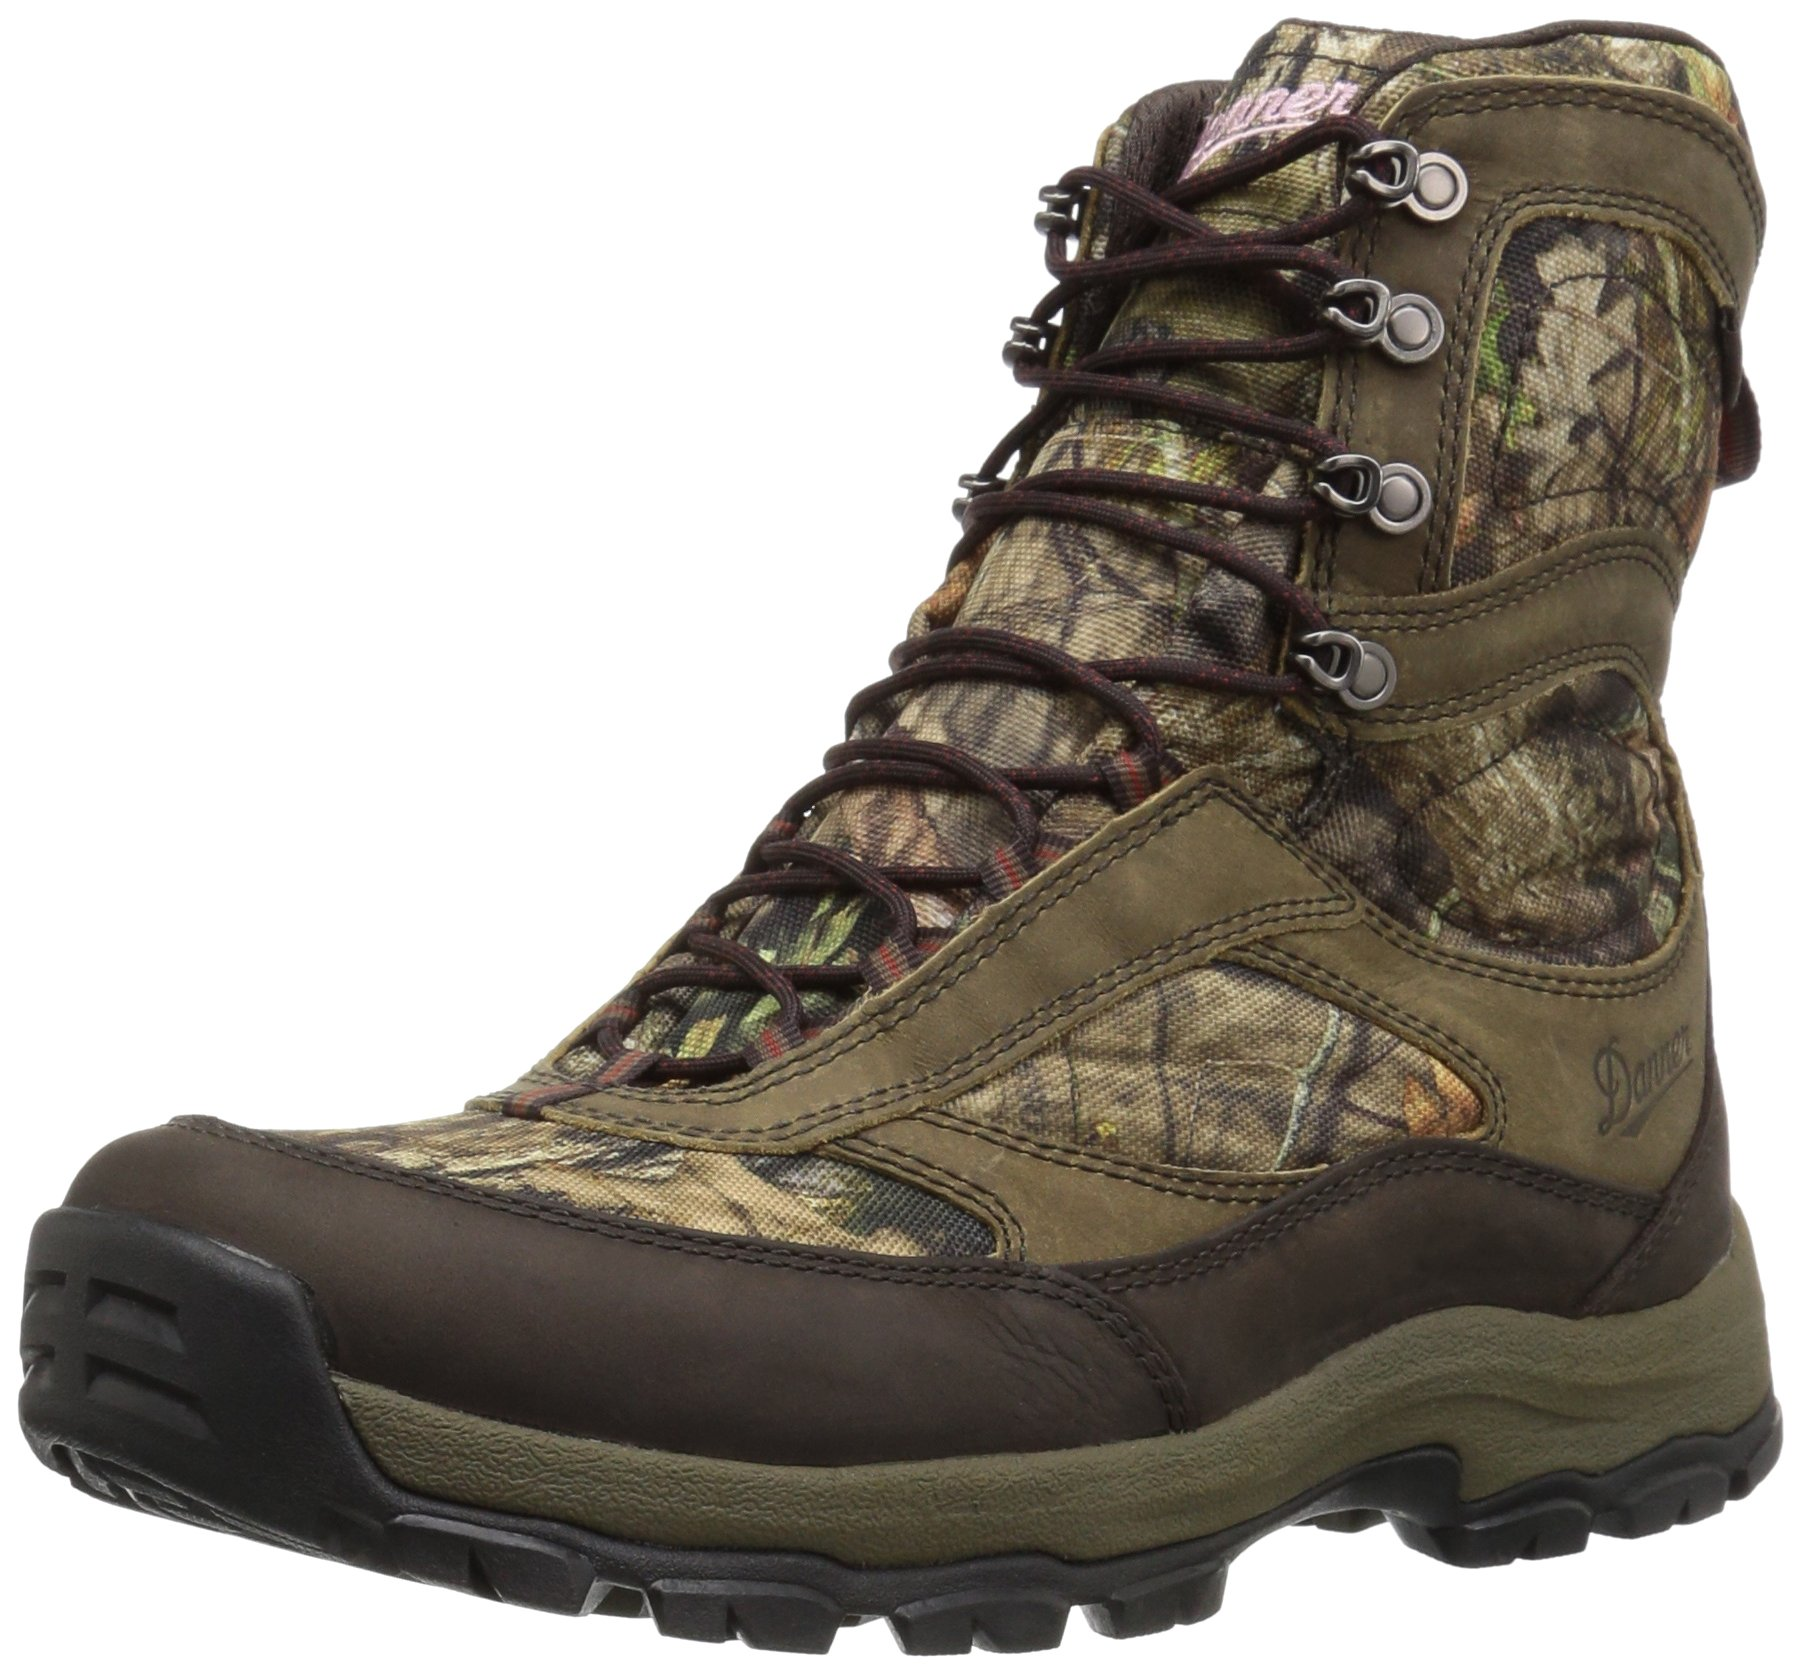 Danner Women's High Ground Hunting Shoes, Mossy Oak Break Up Country, 6 M US by Danner